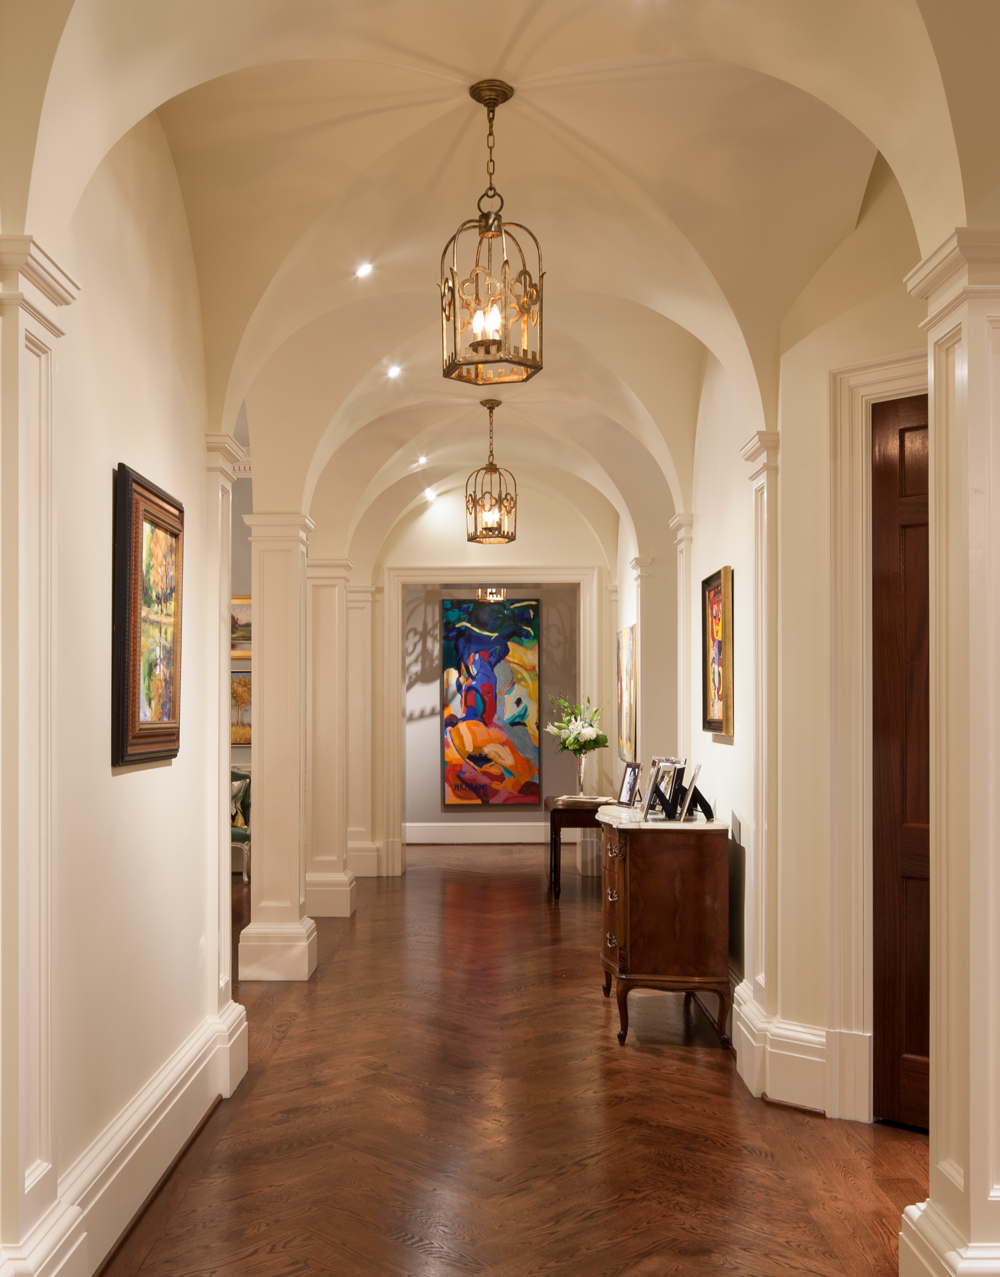 Hallway - Johnson House Art Collection, William T. Baker